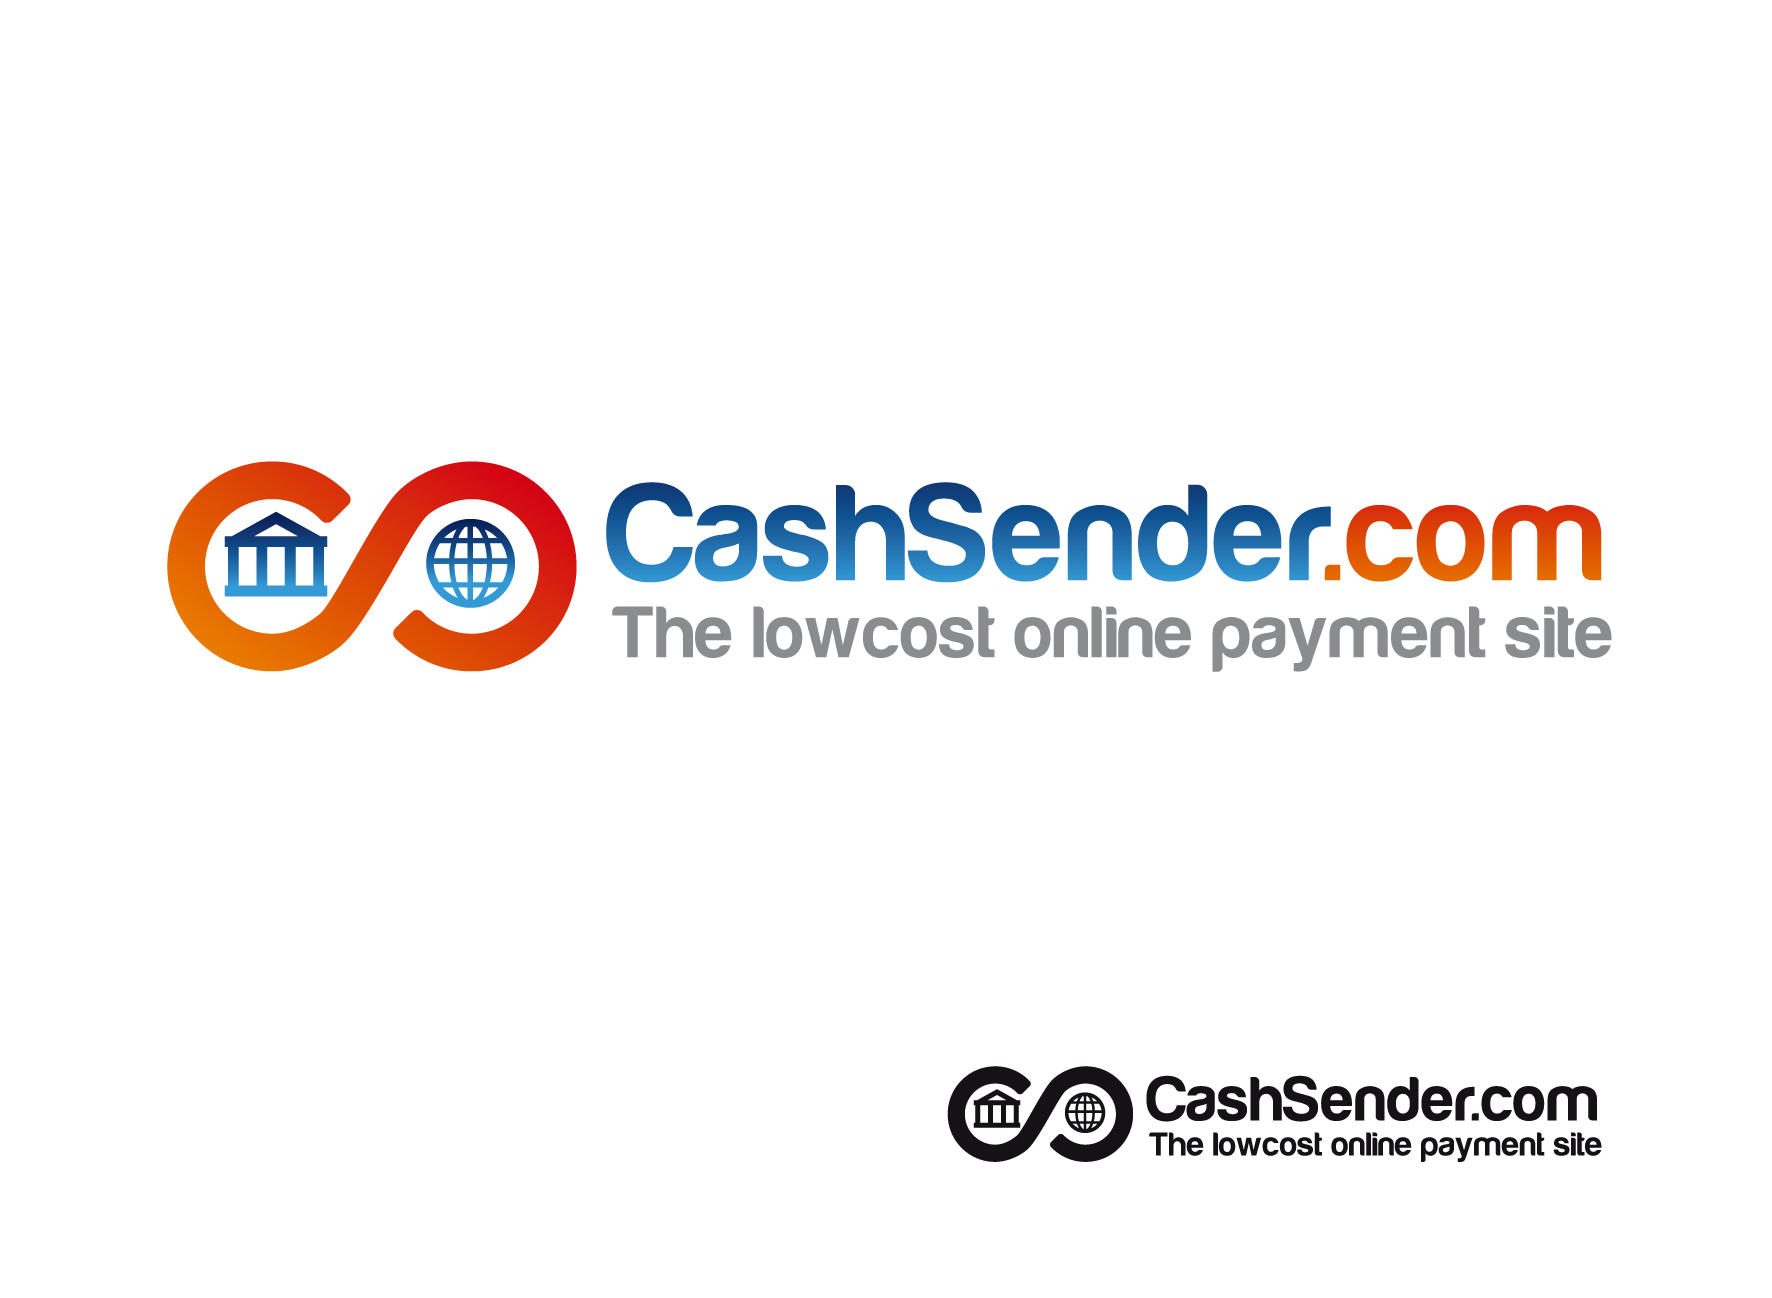 Logo Design by luna - Entry No. 20 in the Logo Design Contest Logo Design needed for alternative payment site CashSender.com.